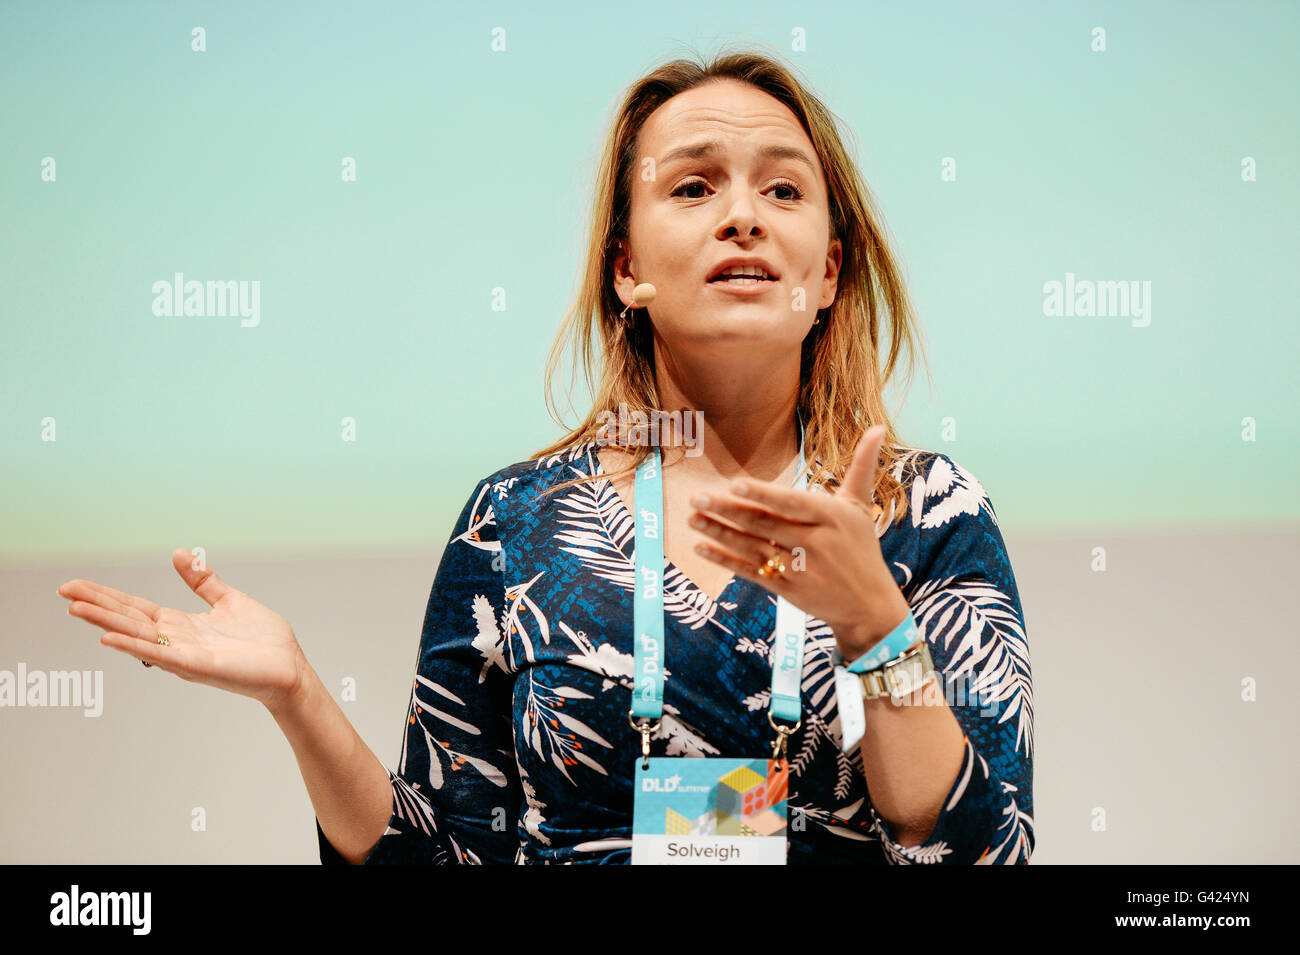 MUNICH/GERMANY - JUNE 17: Solveigh Hieronimus (McKinsey & Company) speaks onstage during the DLDsummer Conference Stock Photo